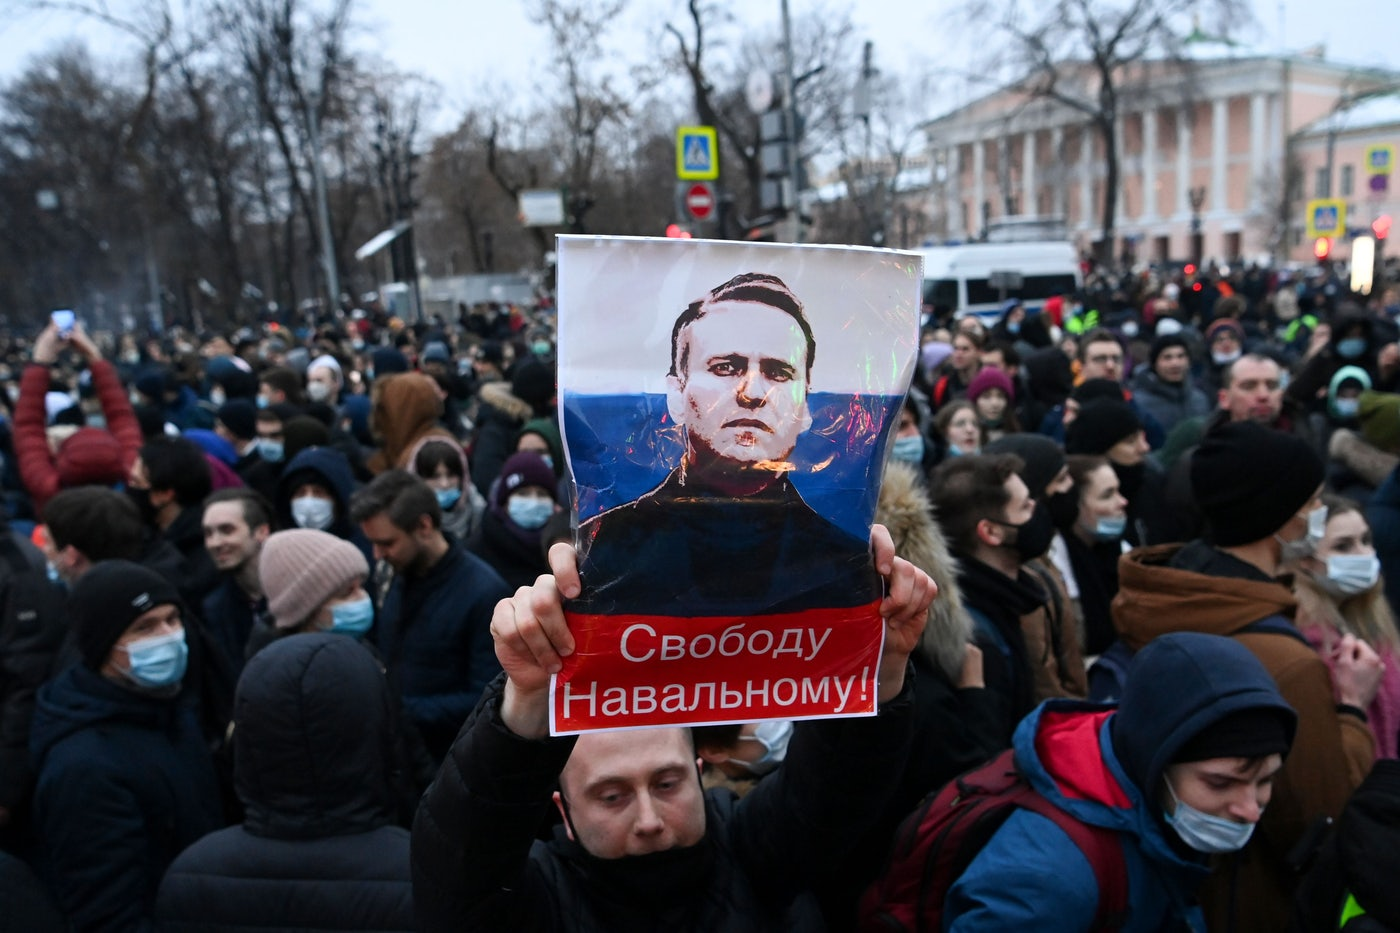 Protesters march in support of jailed opposition leader Alexei Navalny in downtown Moscow.